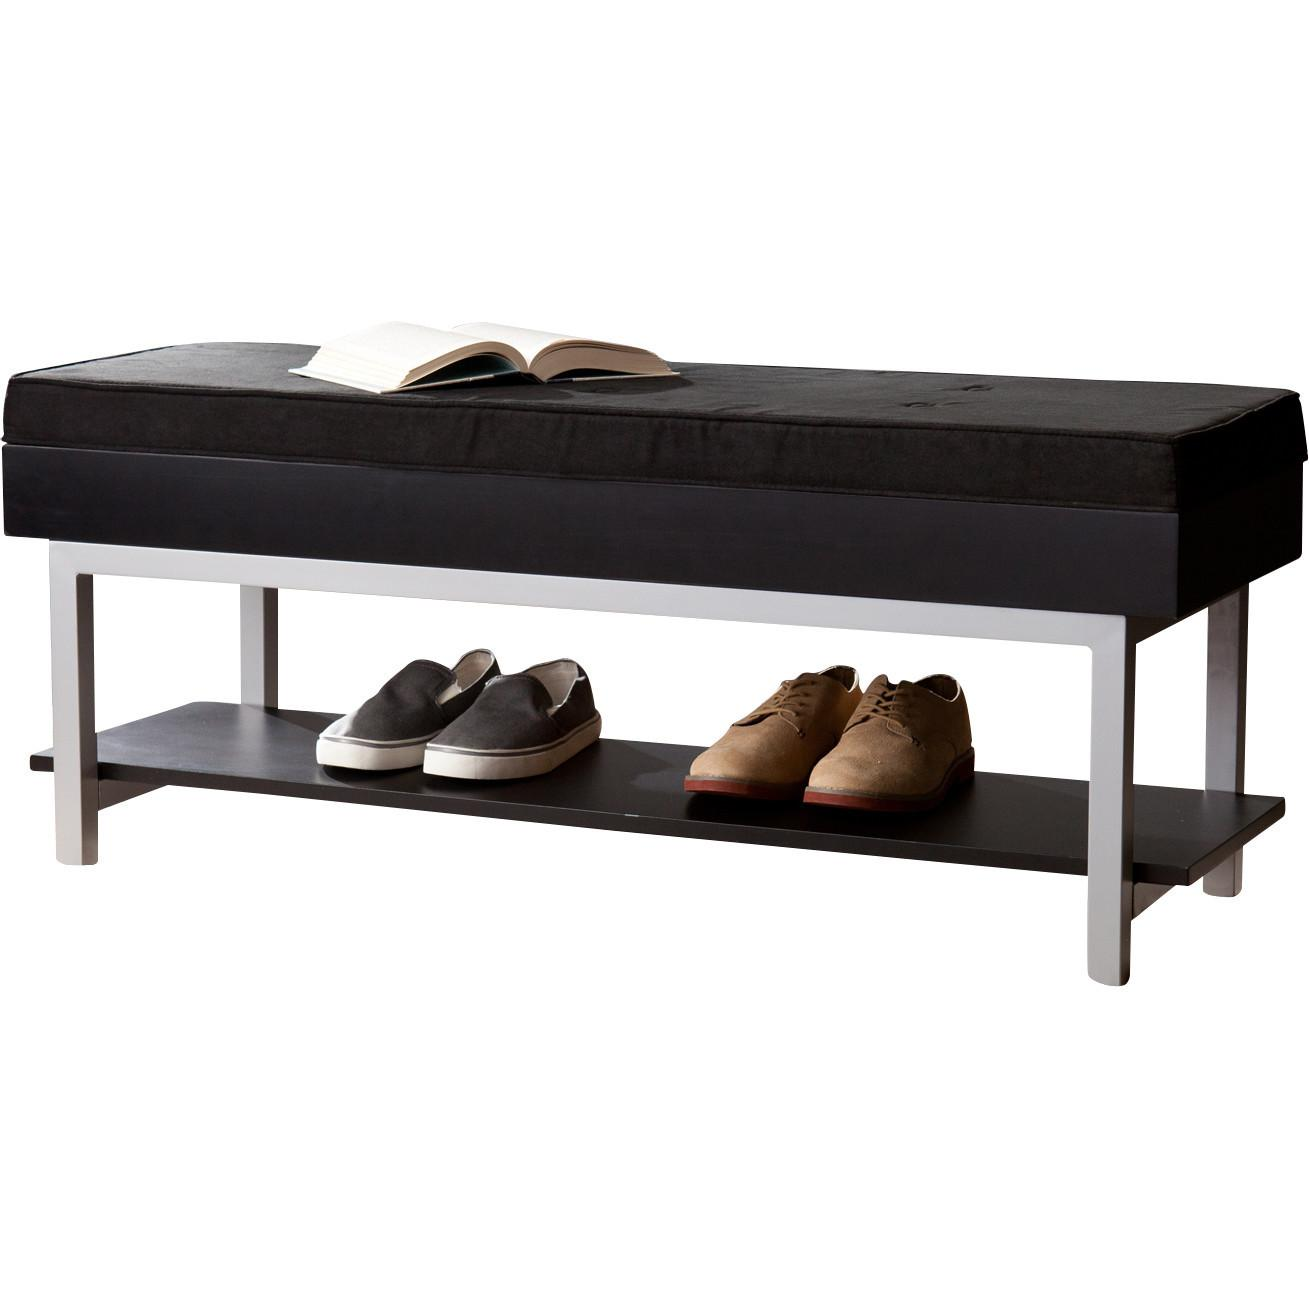 Latitude Run Murphy Upholstered Storage Entryway Bench